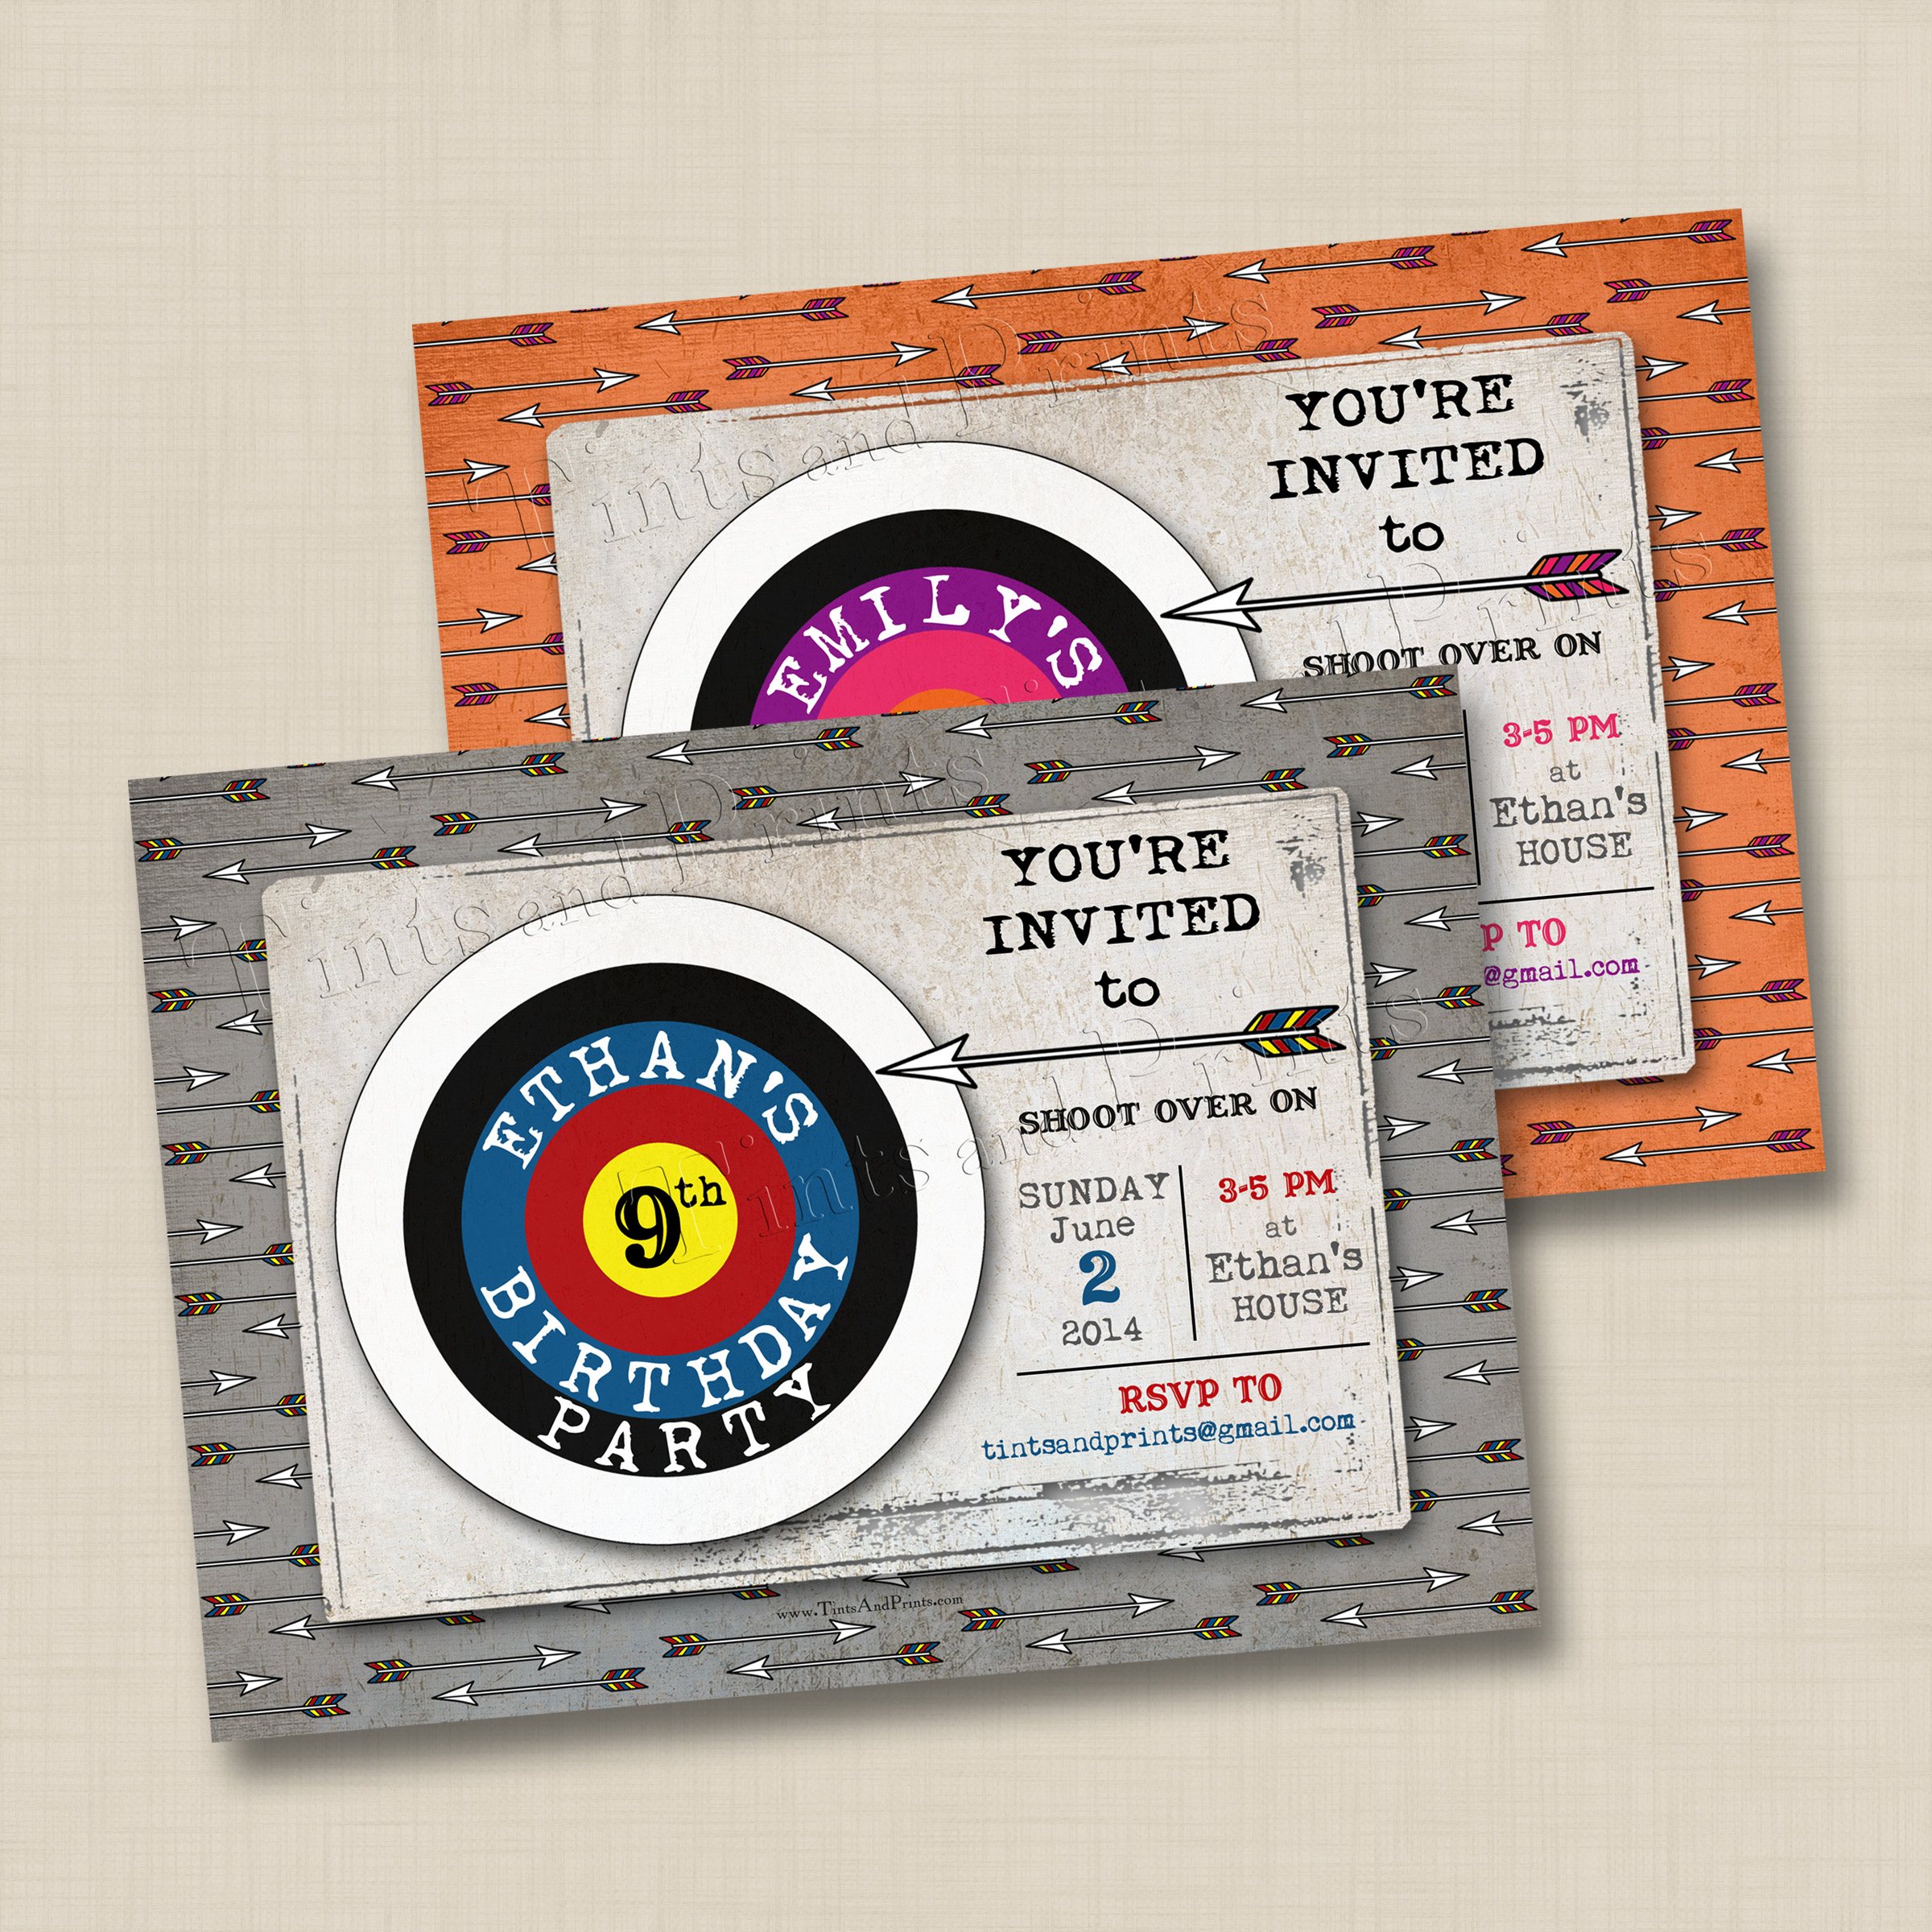 Shoot Over for an Archery Party Custom Photo Card Invitation Design